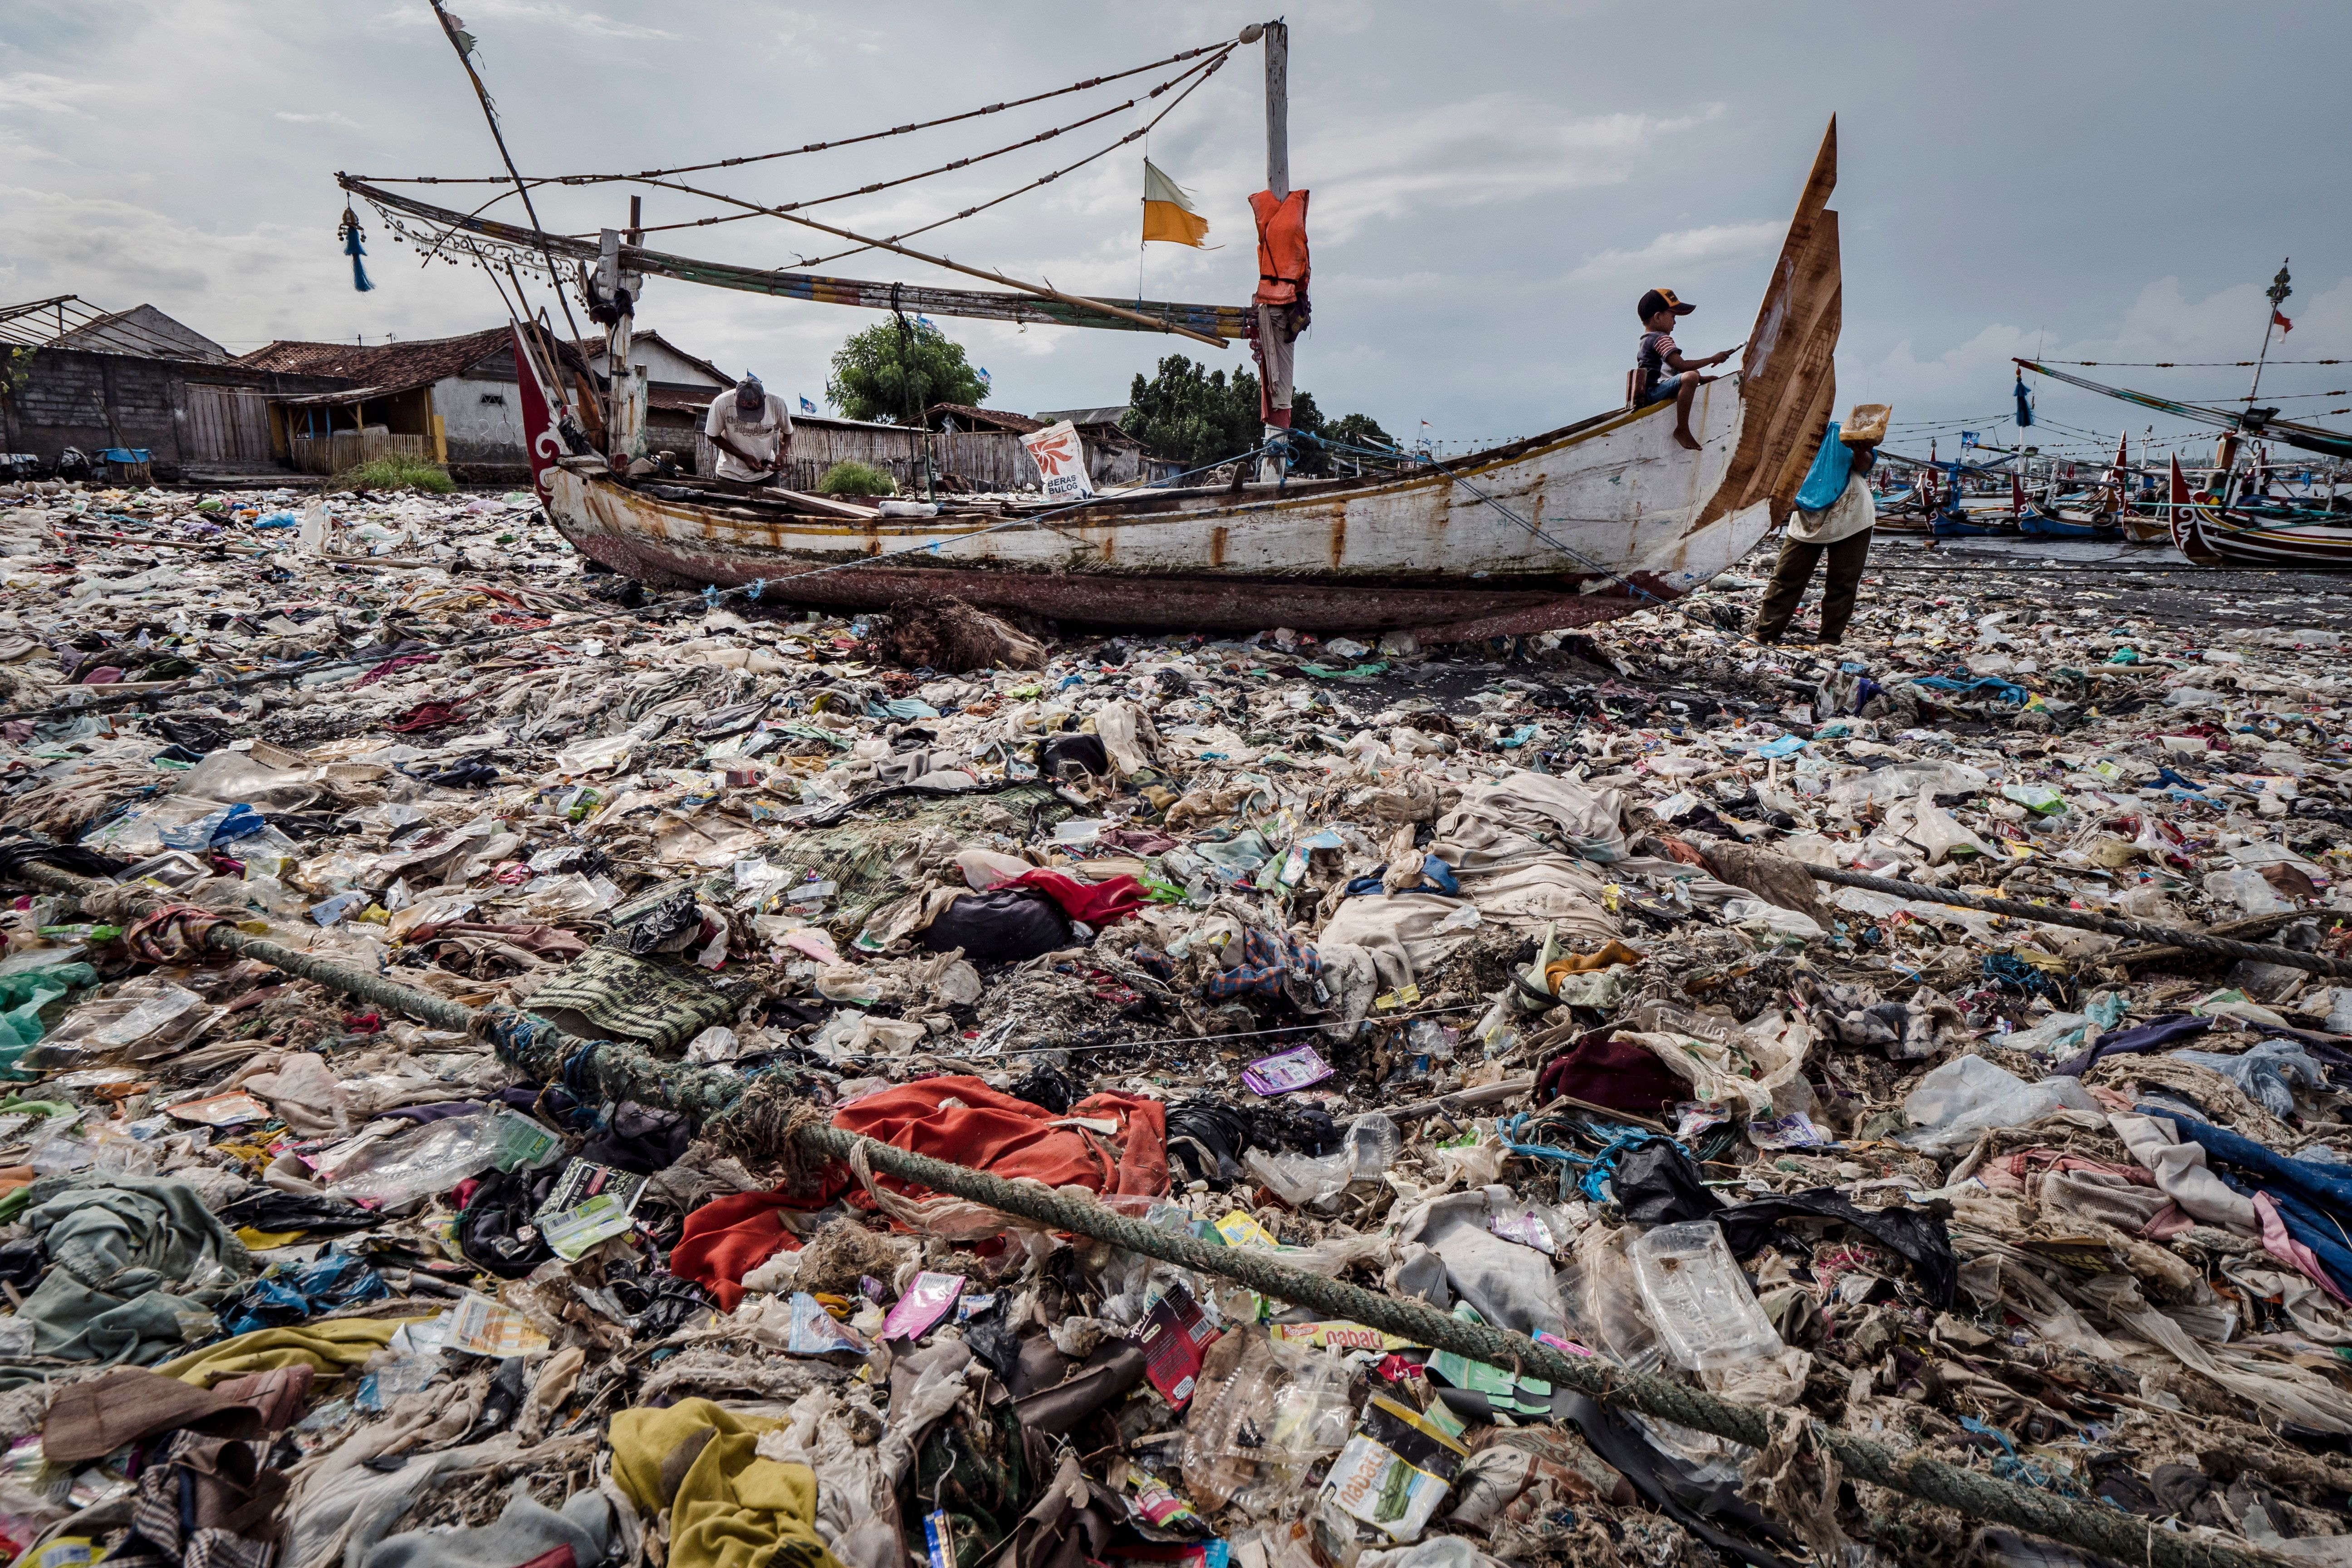 HuffPost visited this beach smothered in plastic waste at Muncar port in Banyuwangi, East Java, Indonesia,on March 4, 2